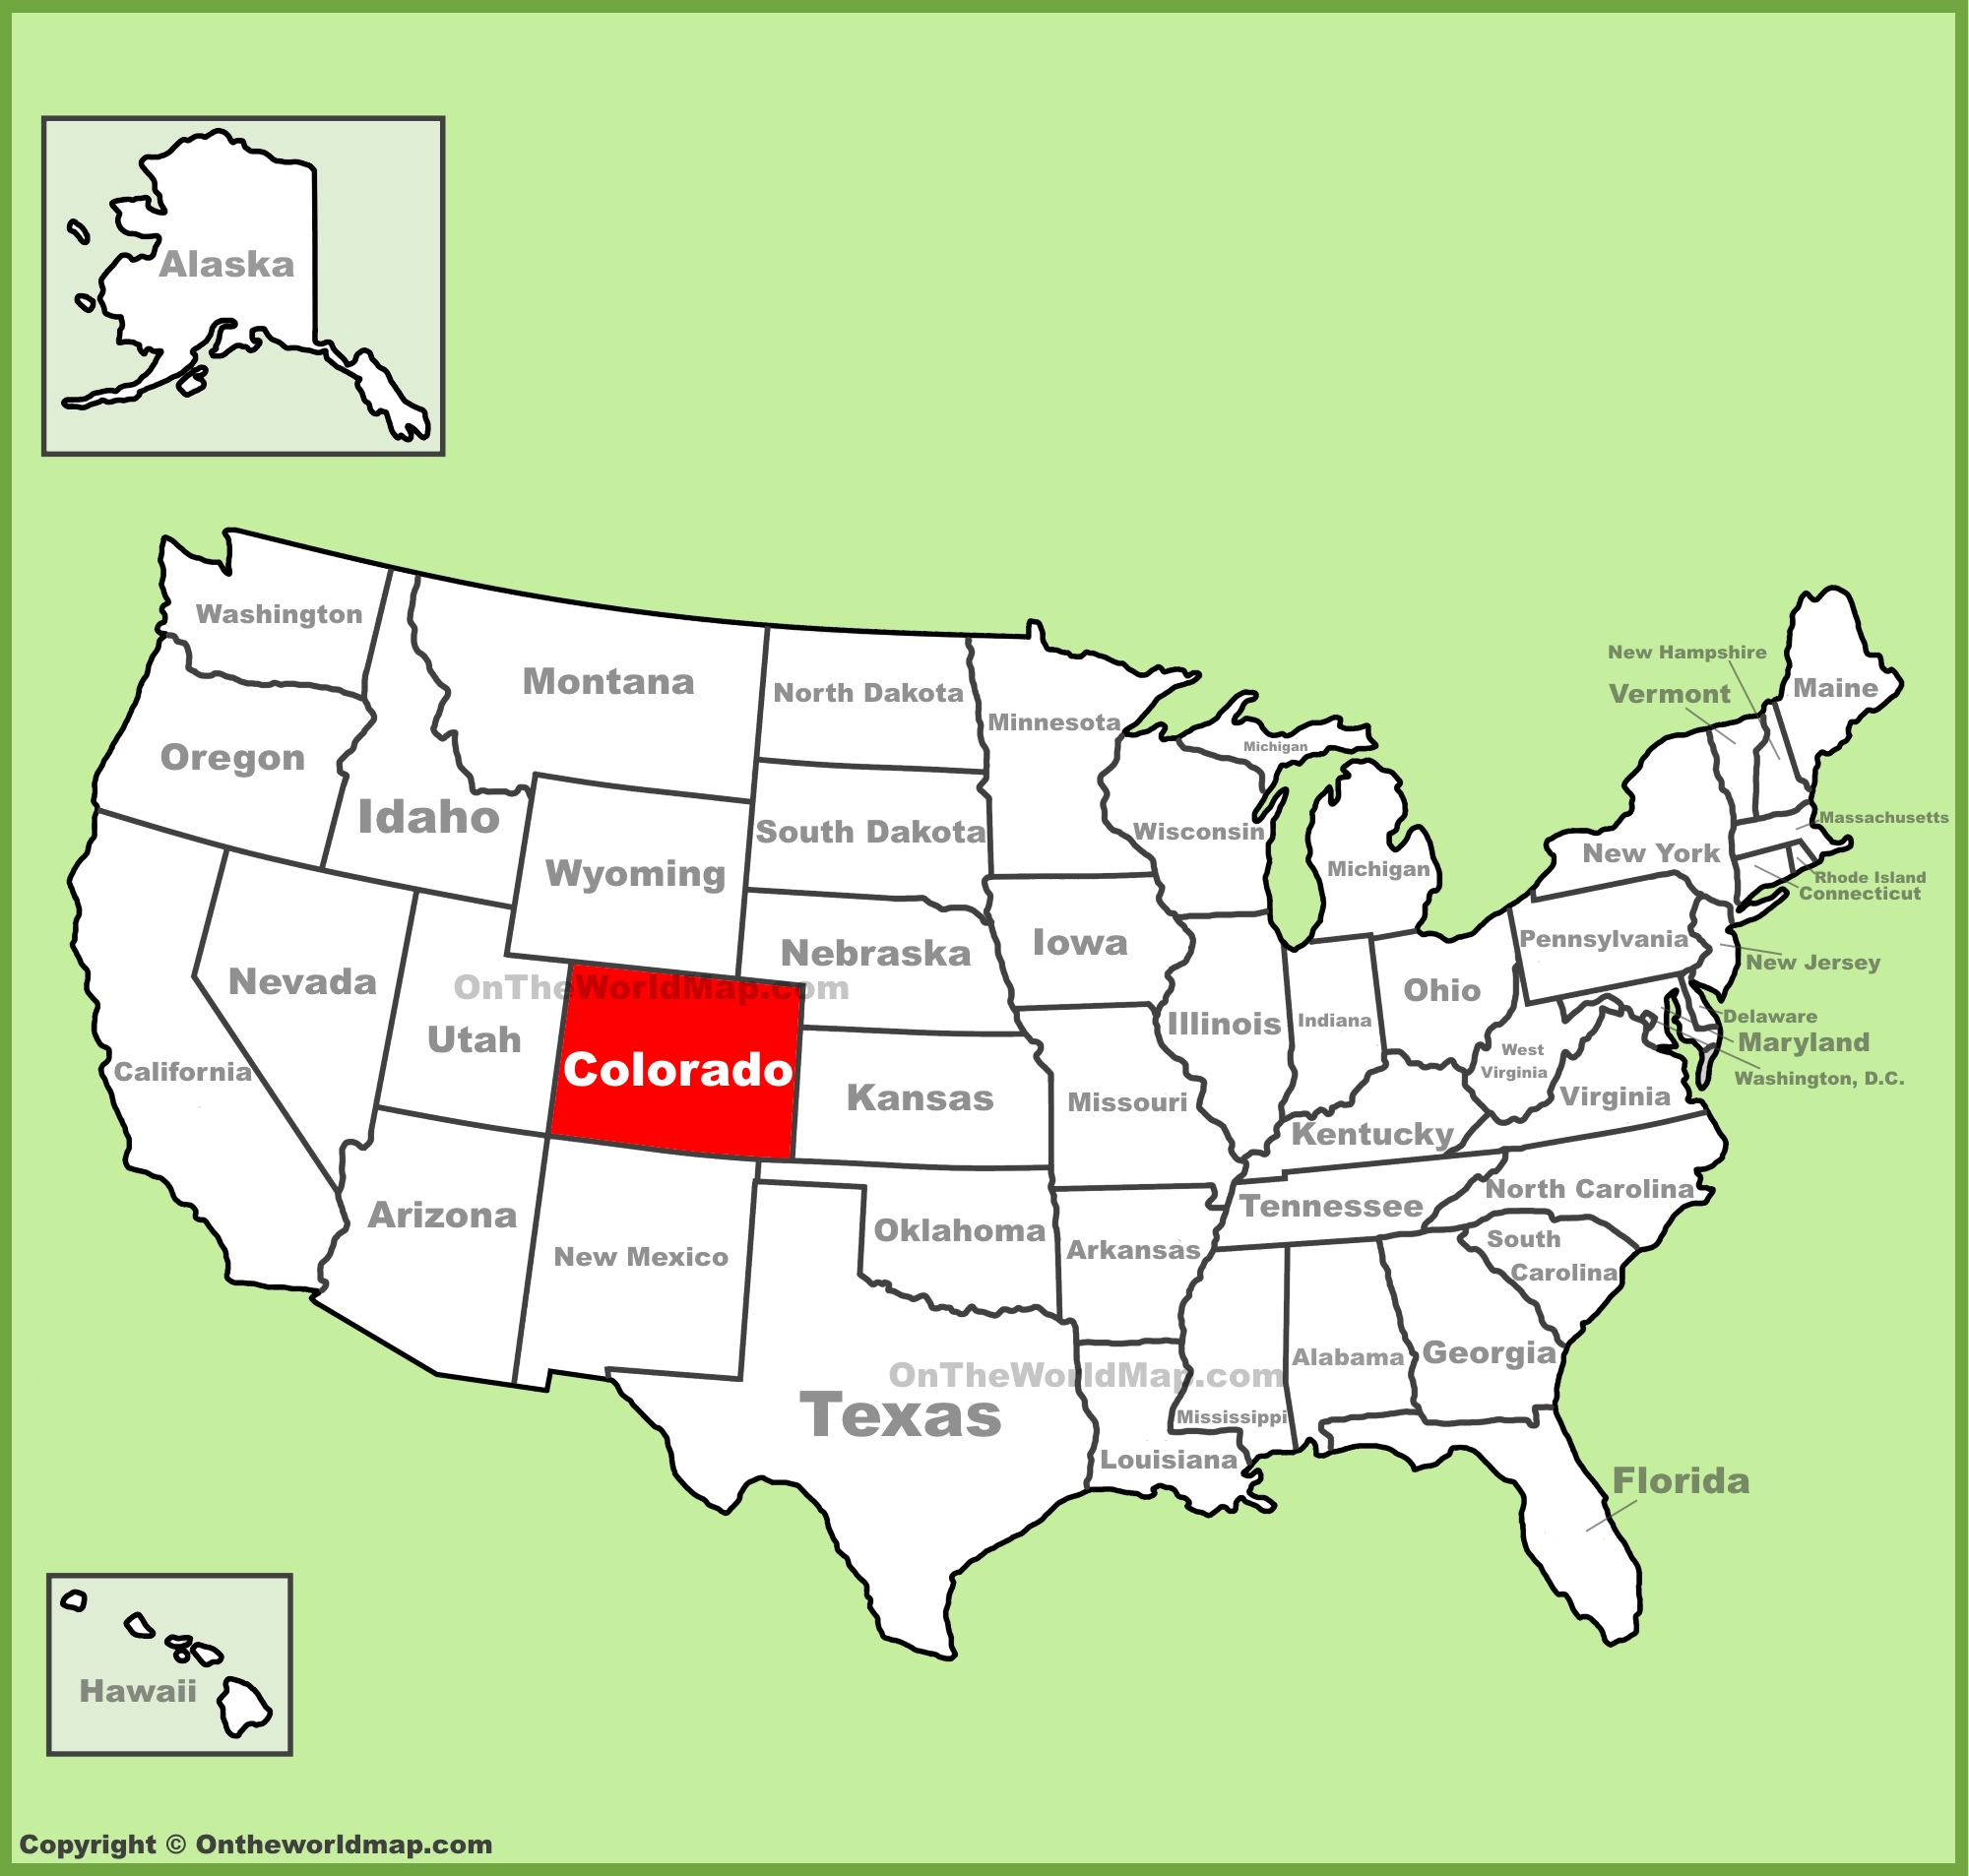 Colorado Location On The US Map - Colorado us map